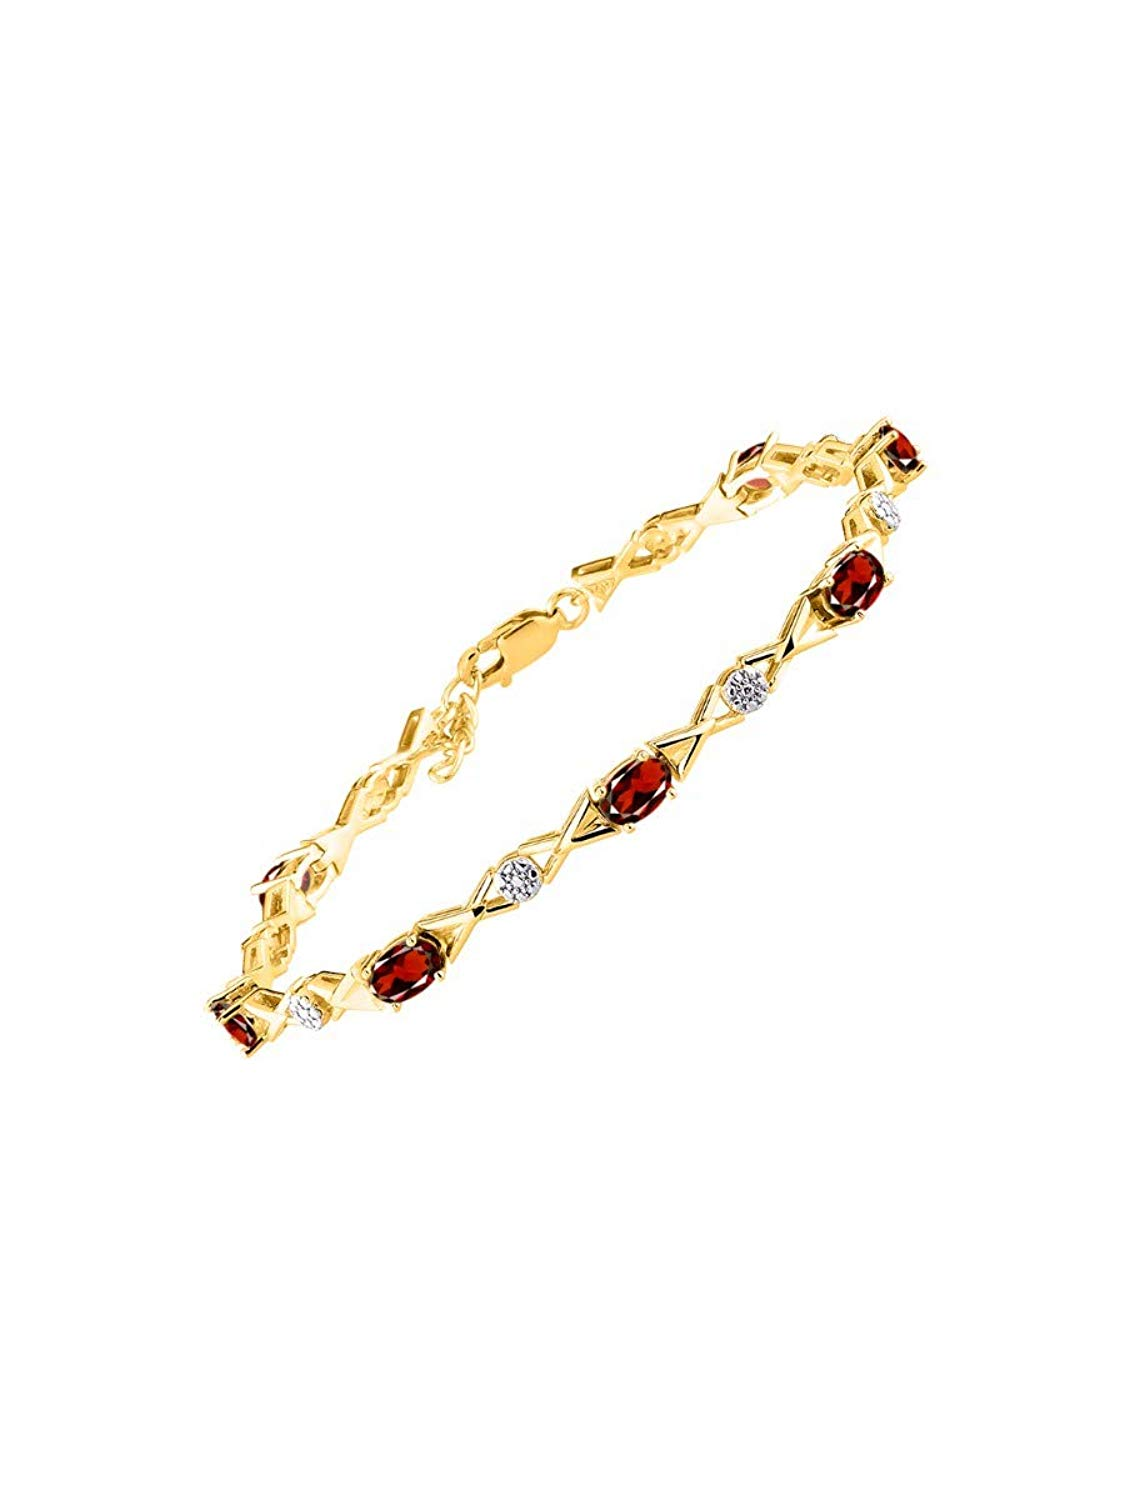 "Stunning Garnet & Diamond S XOXO Hugs & Kisses Tennis Bracelet Set in Yellow Gold Plated Silver - Adjustable to fit 7"" - 8"" Wrist"